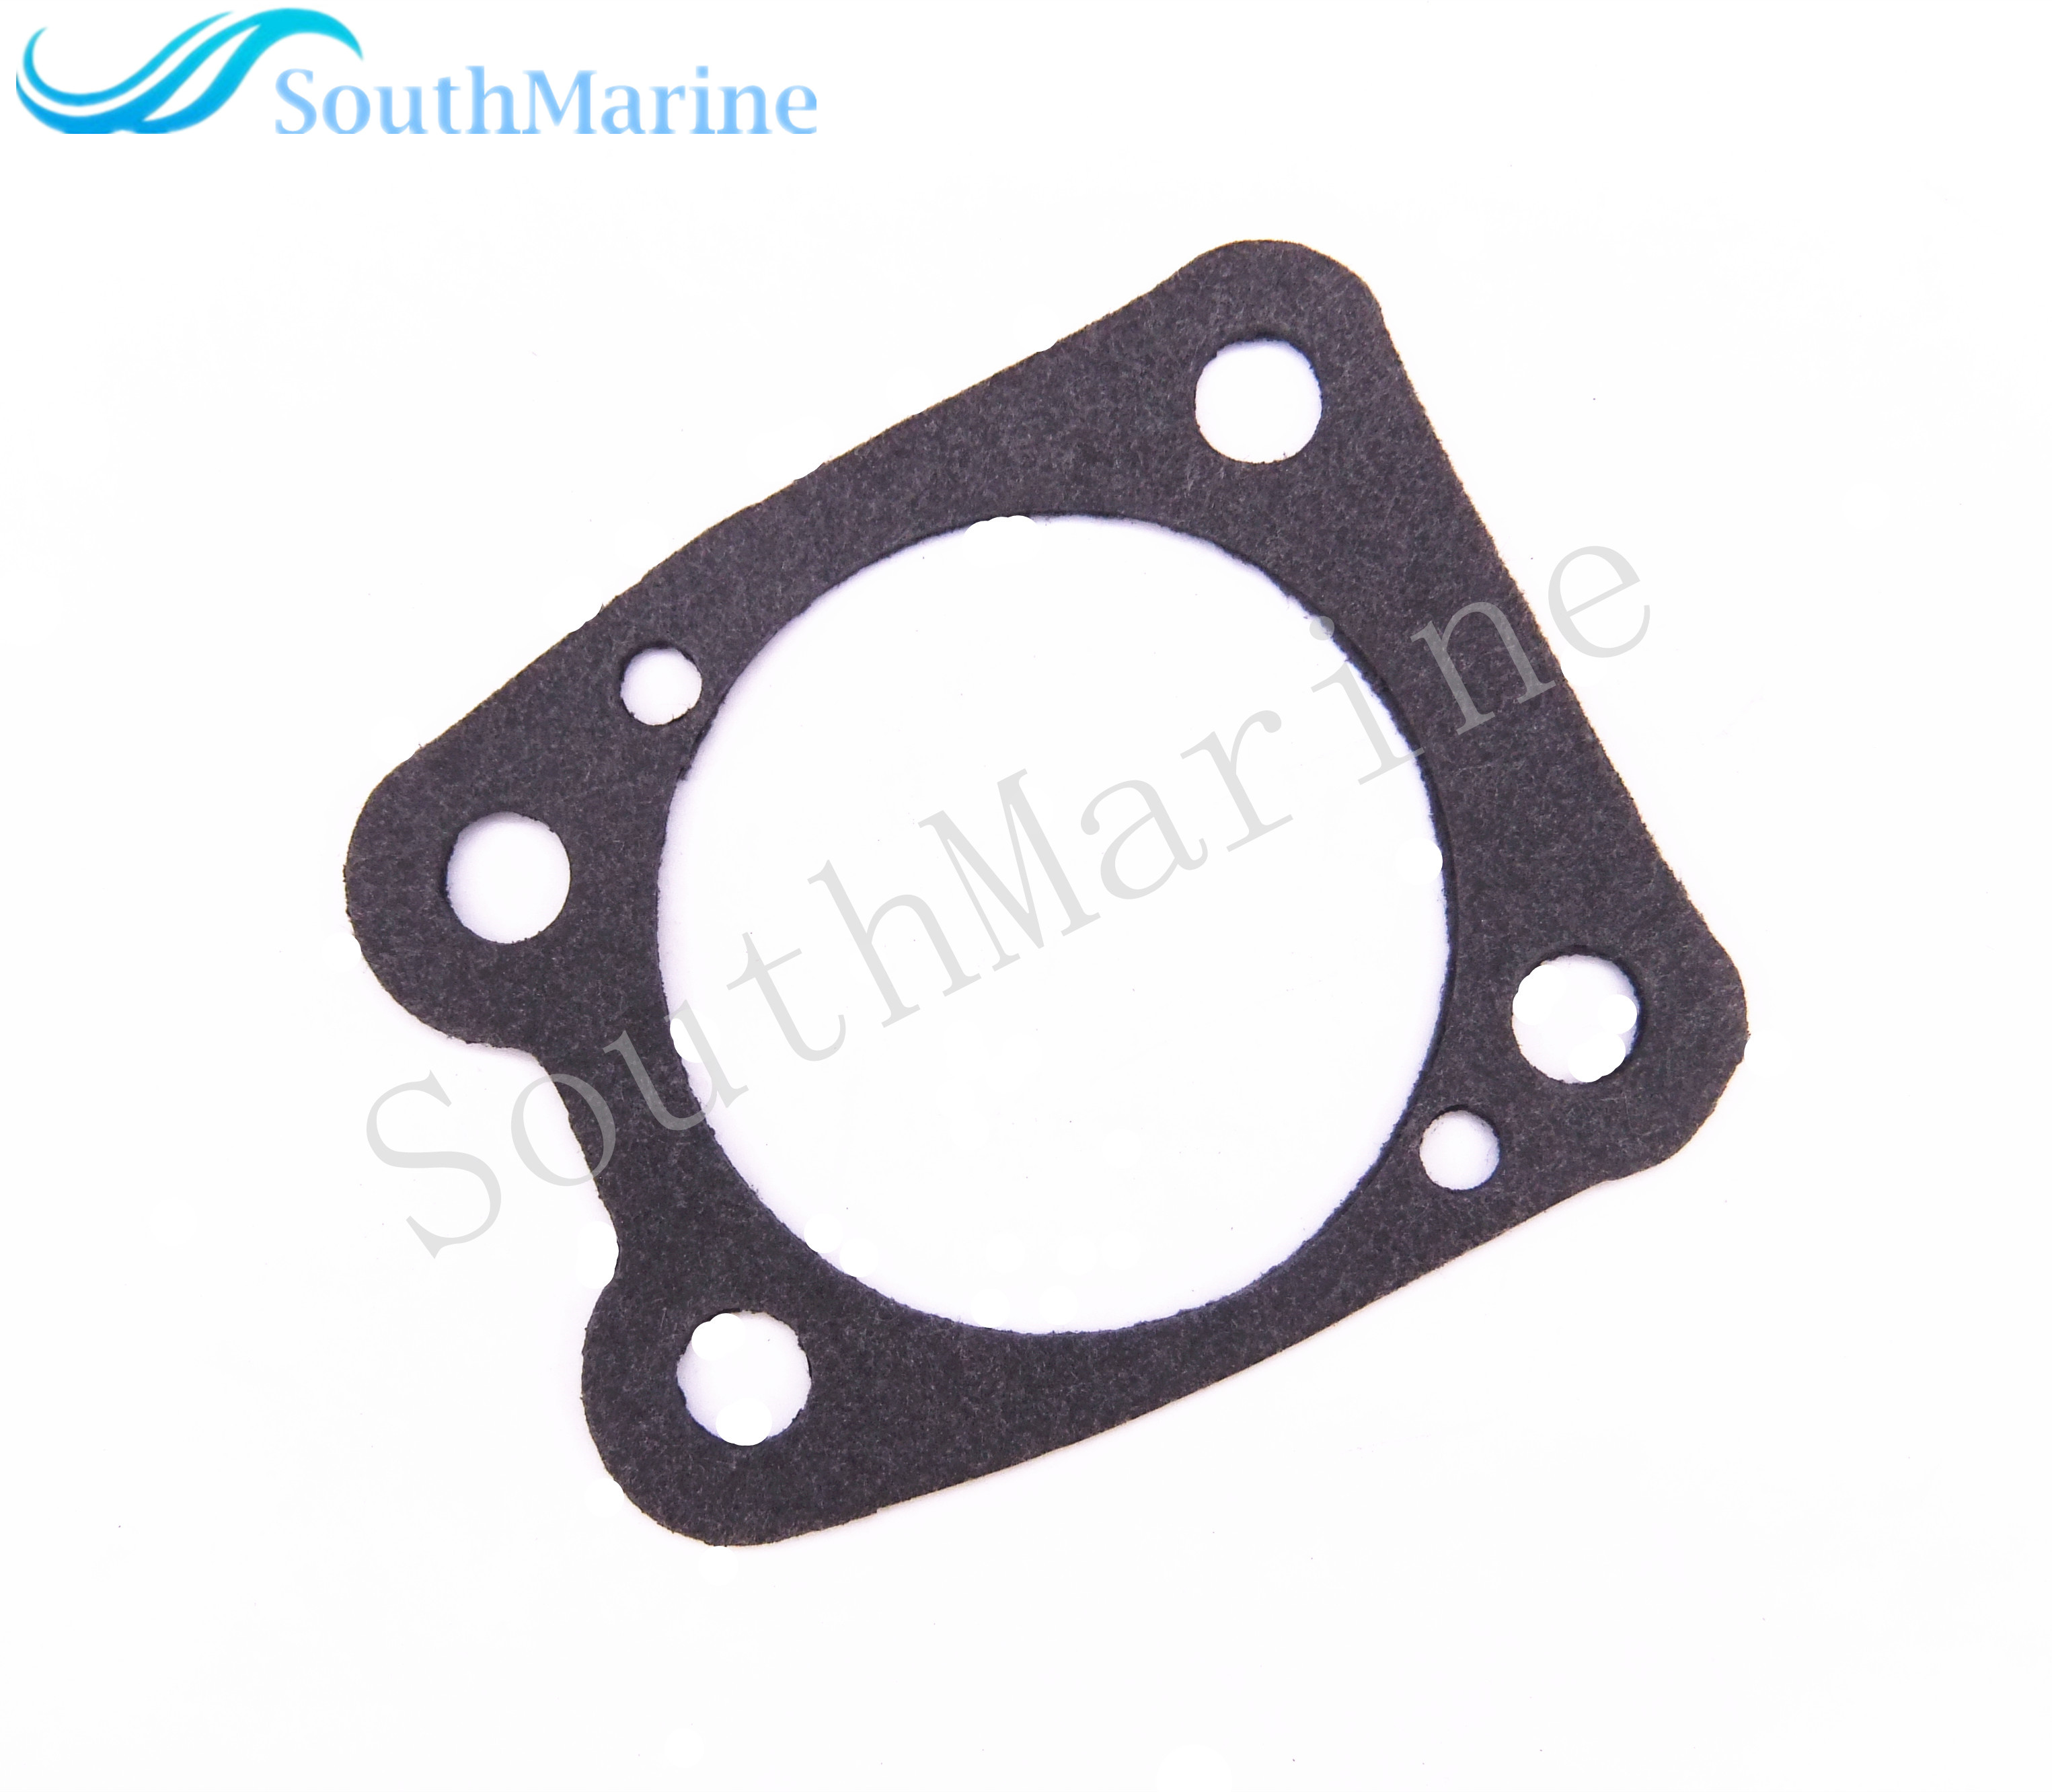 F4-03000018 Water Pump Cover Gasket for Parsun 4-Stroke F5 F4 Outboard Engines Boat Motor